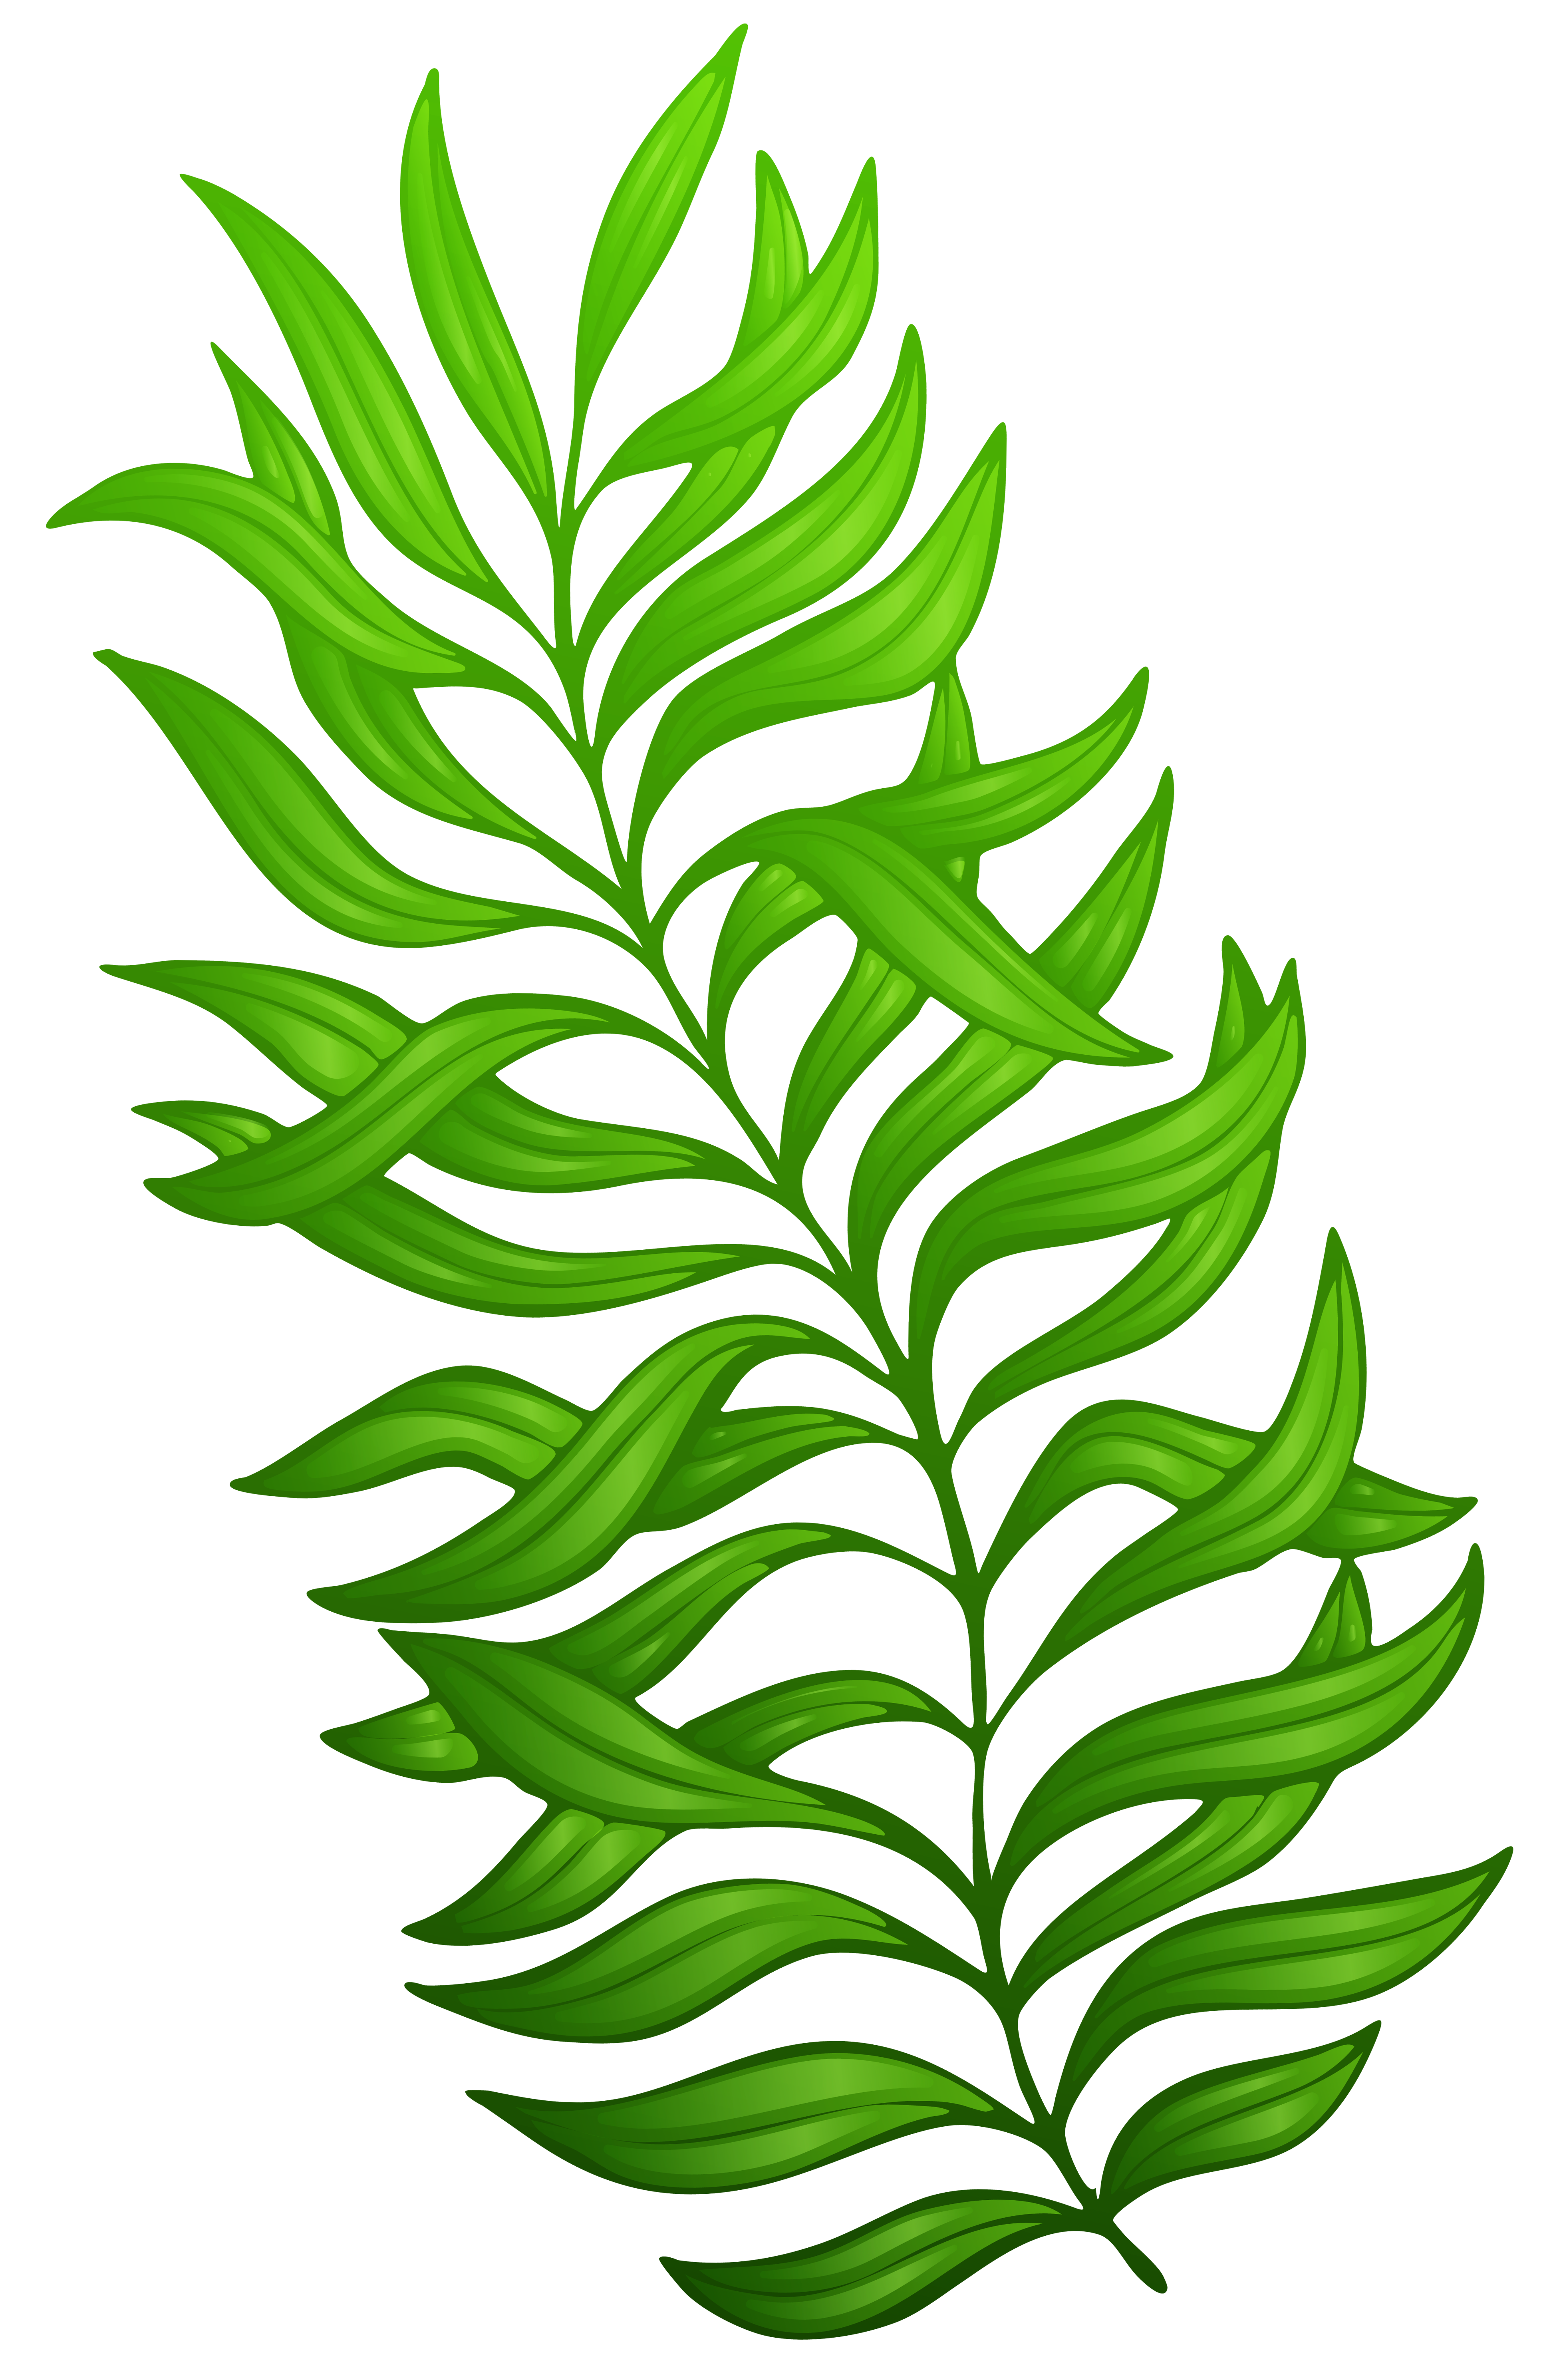 Moana clipart tropical plant. Exotic green png image